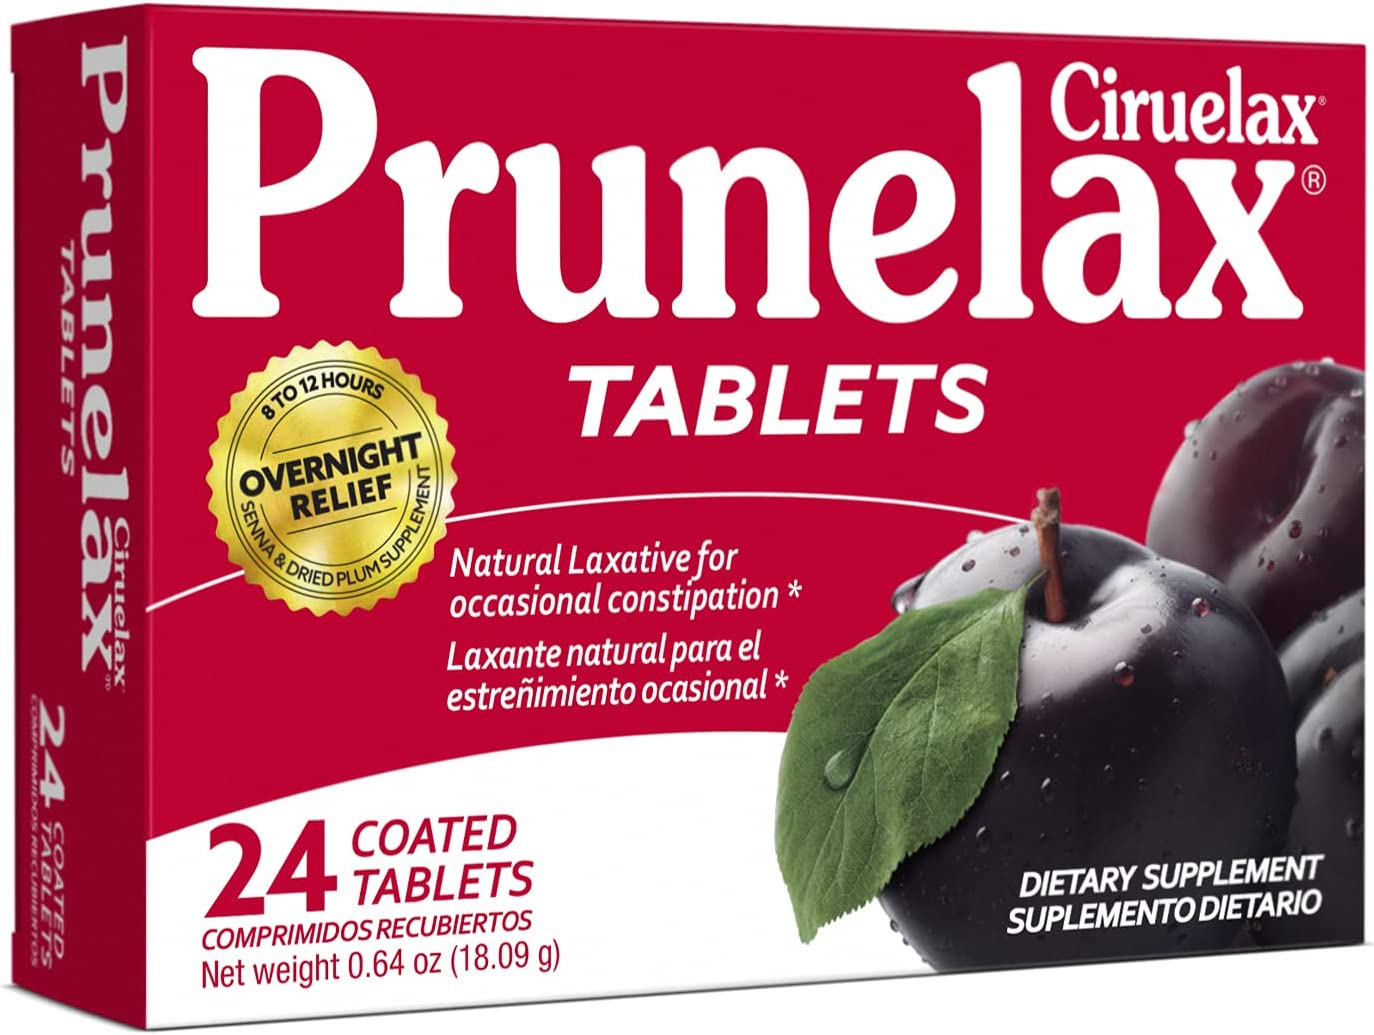 Prunelax Ciruelax Natural Shipping included Large discharge sale Laxative 24Count Tablets Regular